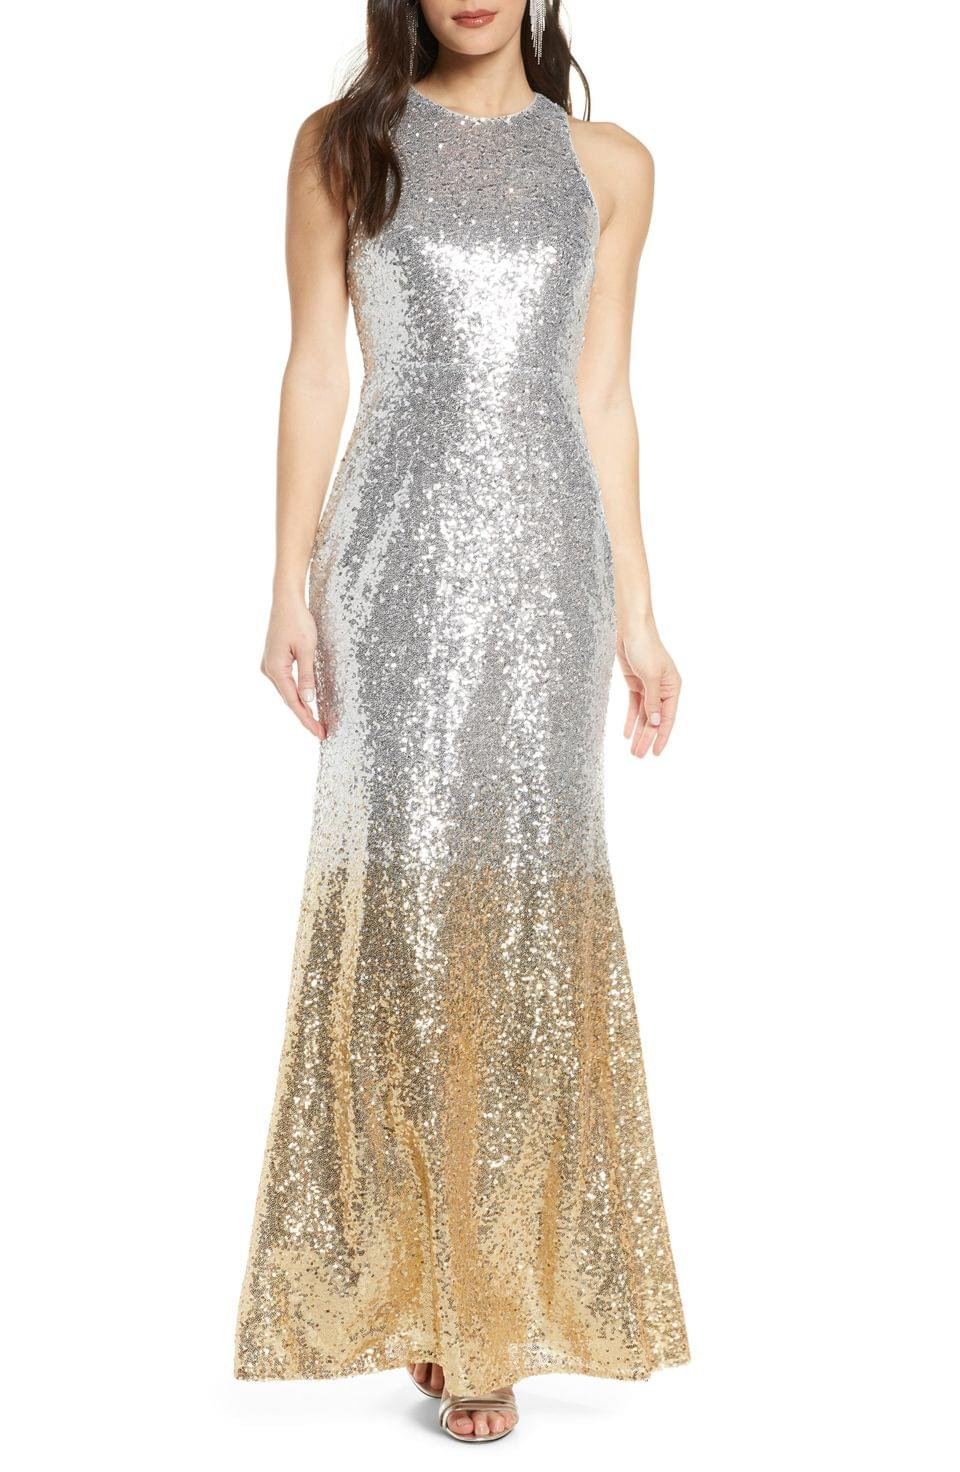 Women's Lulus Infinite Dreams Ombr Sequin Trumpet Gown